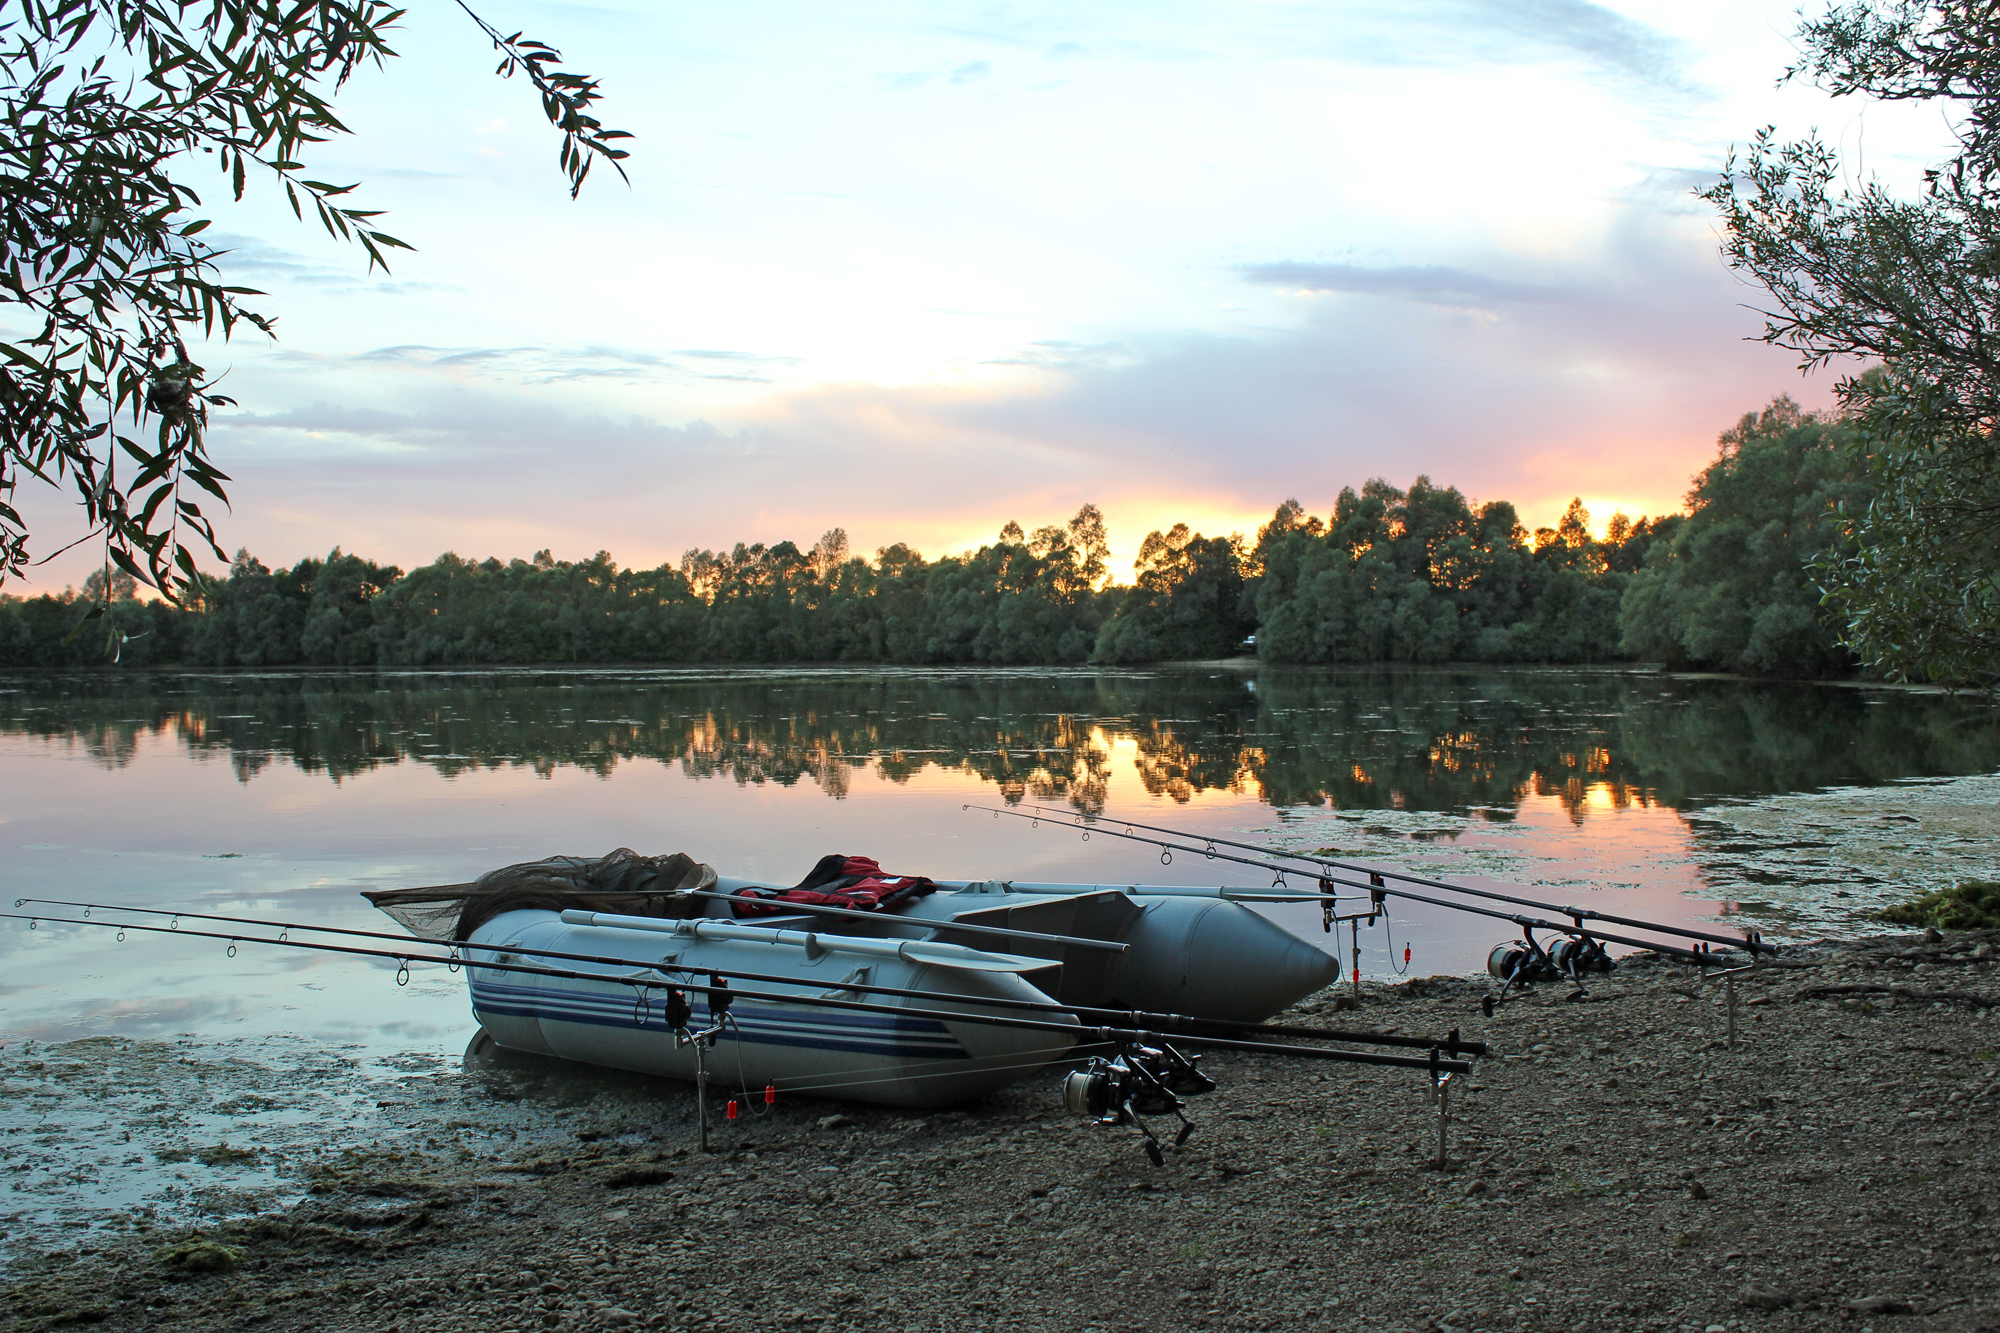 An inflatable boat is an essential tool for a lake like this